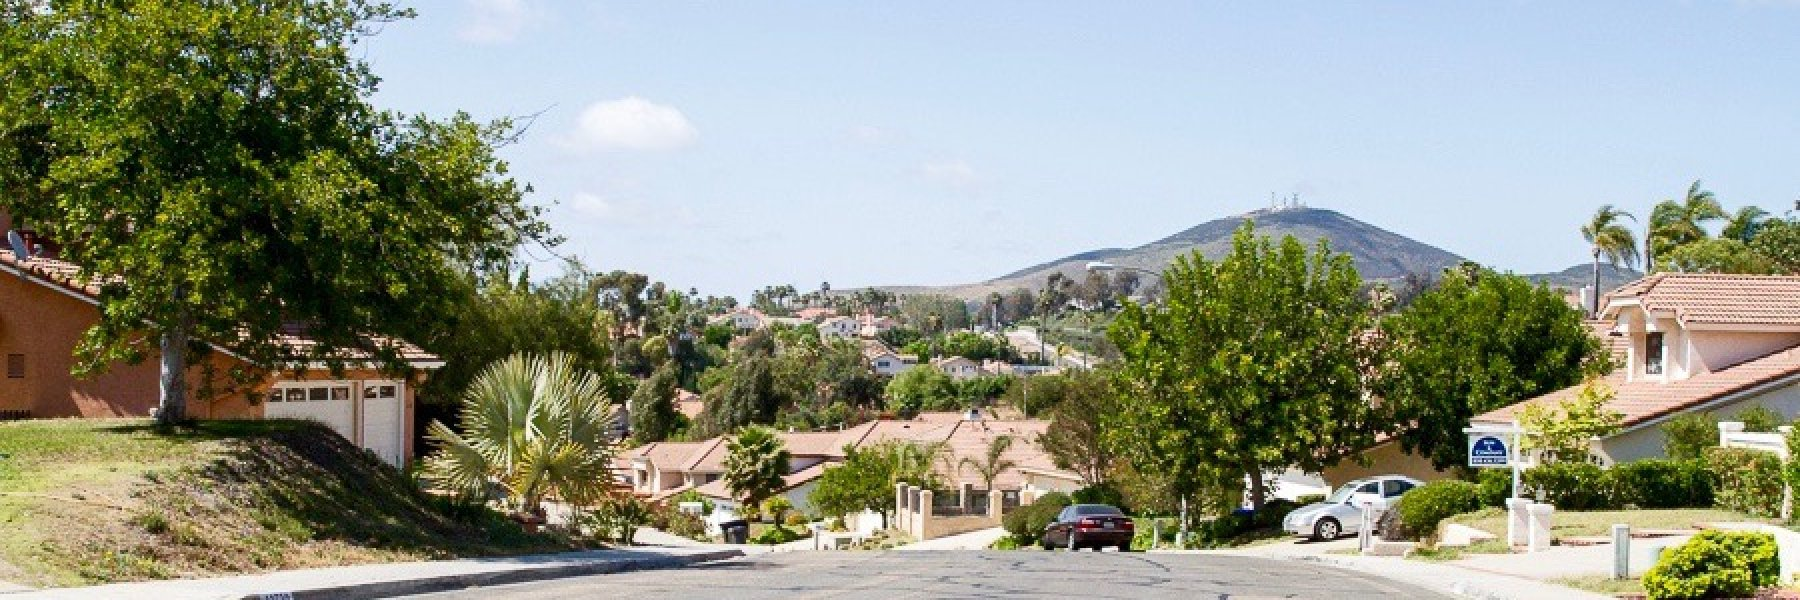 Park View Estates is a community of homes in San Diego California